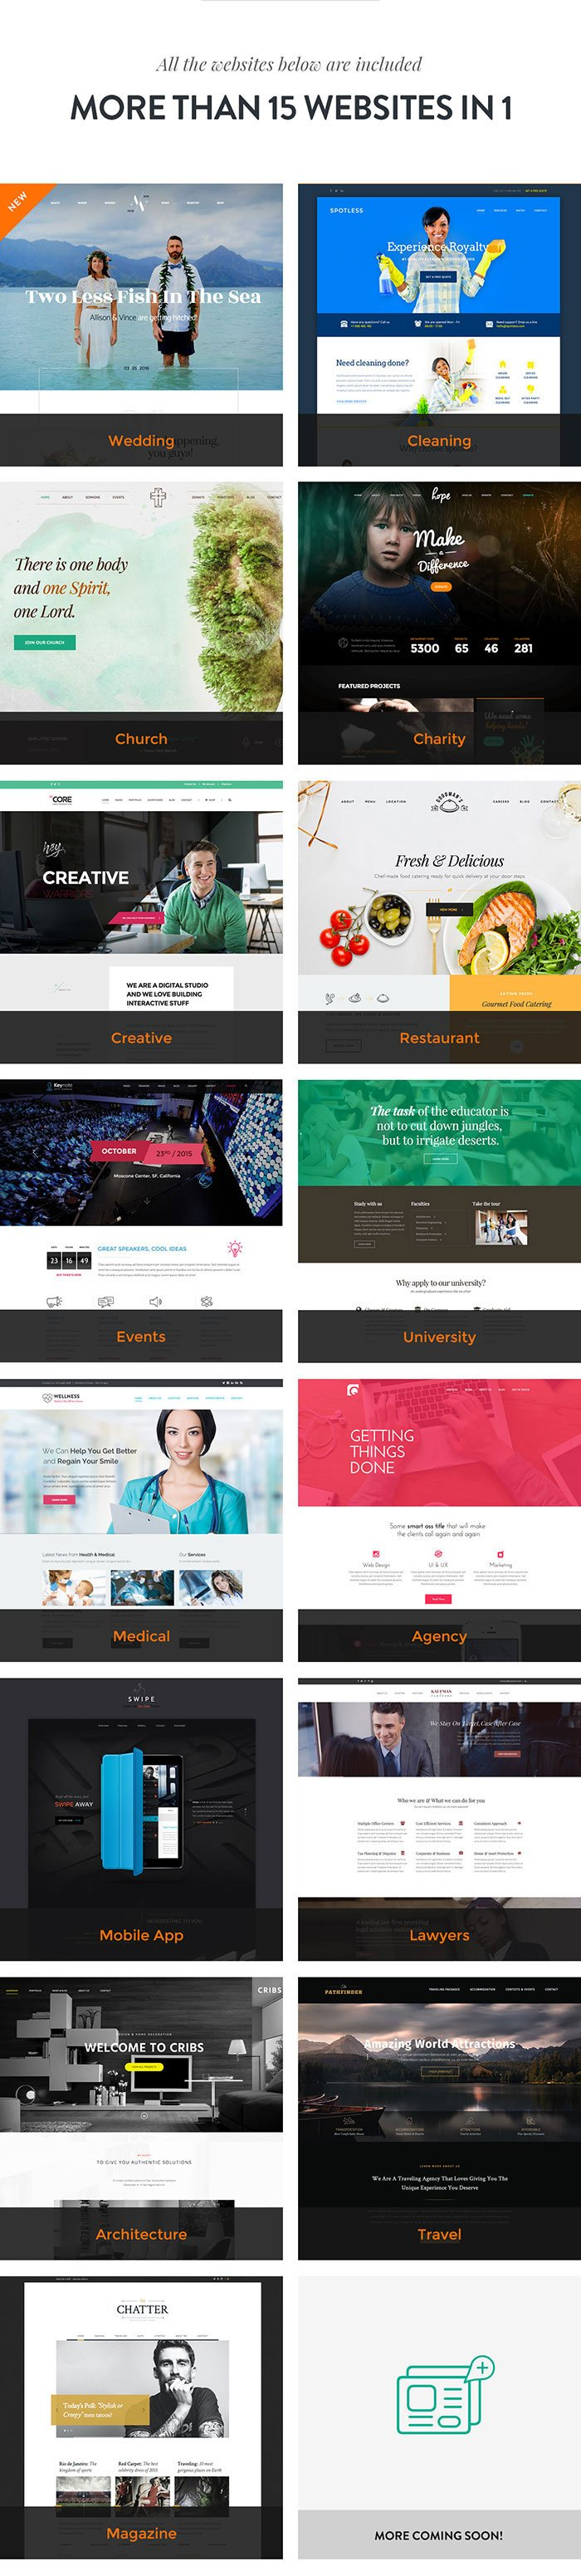 The-Core-WordPress-Theme-15-in-1